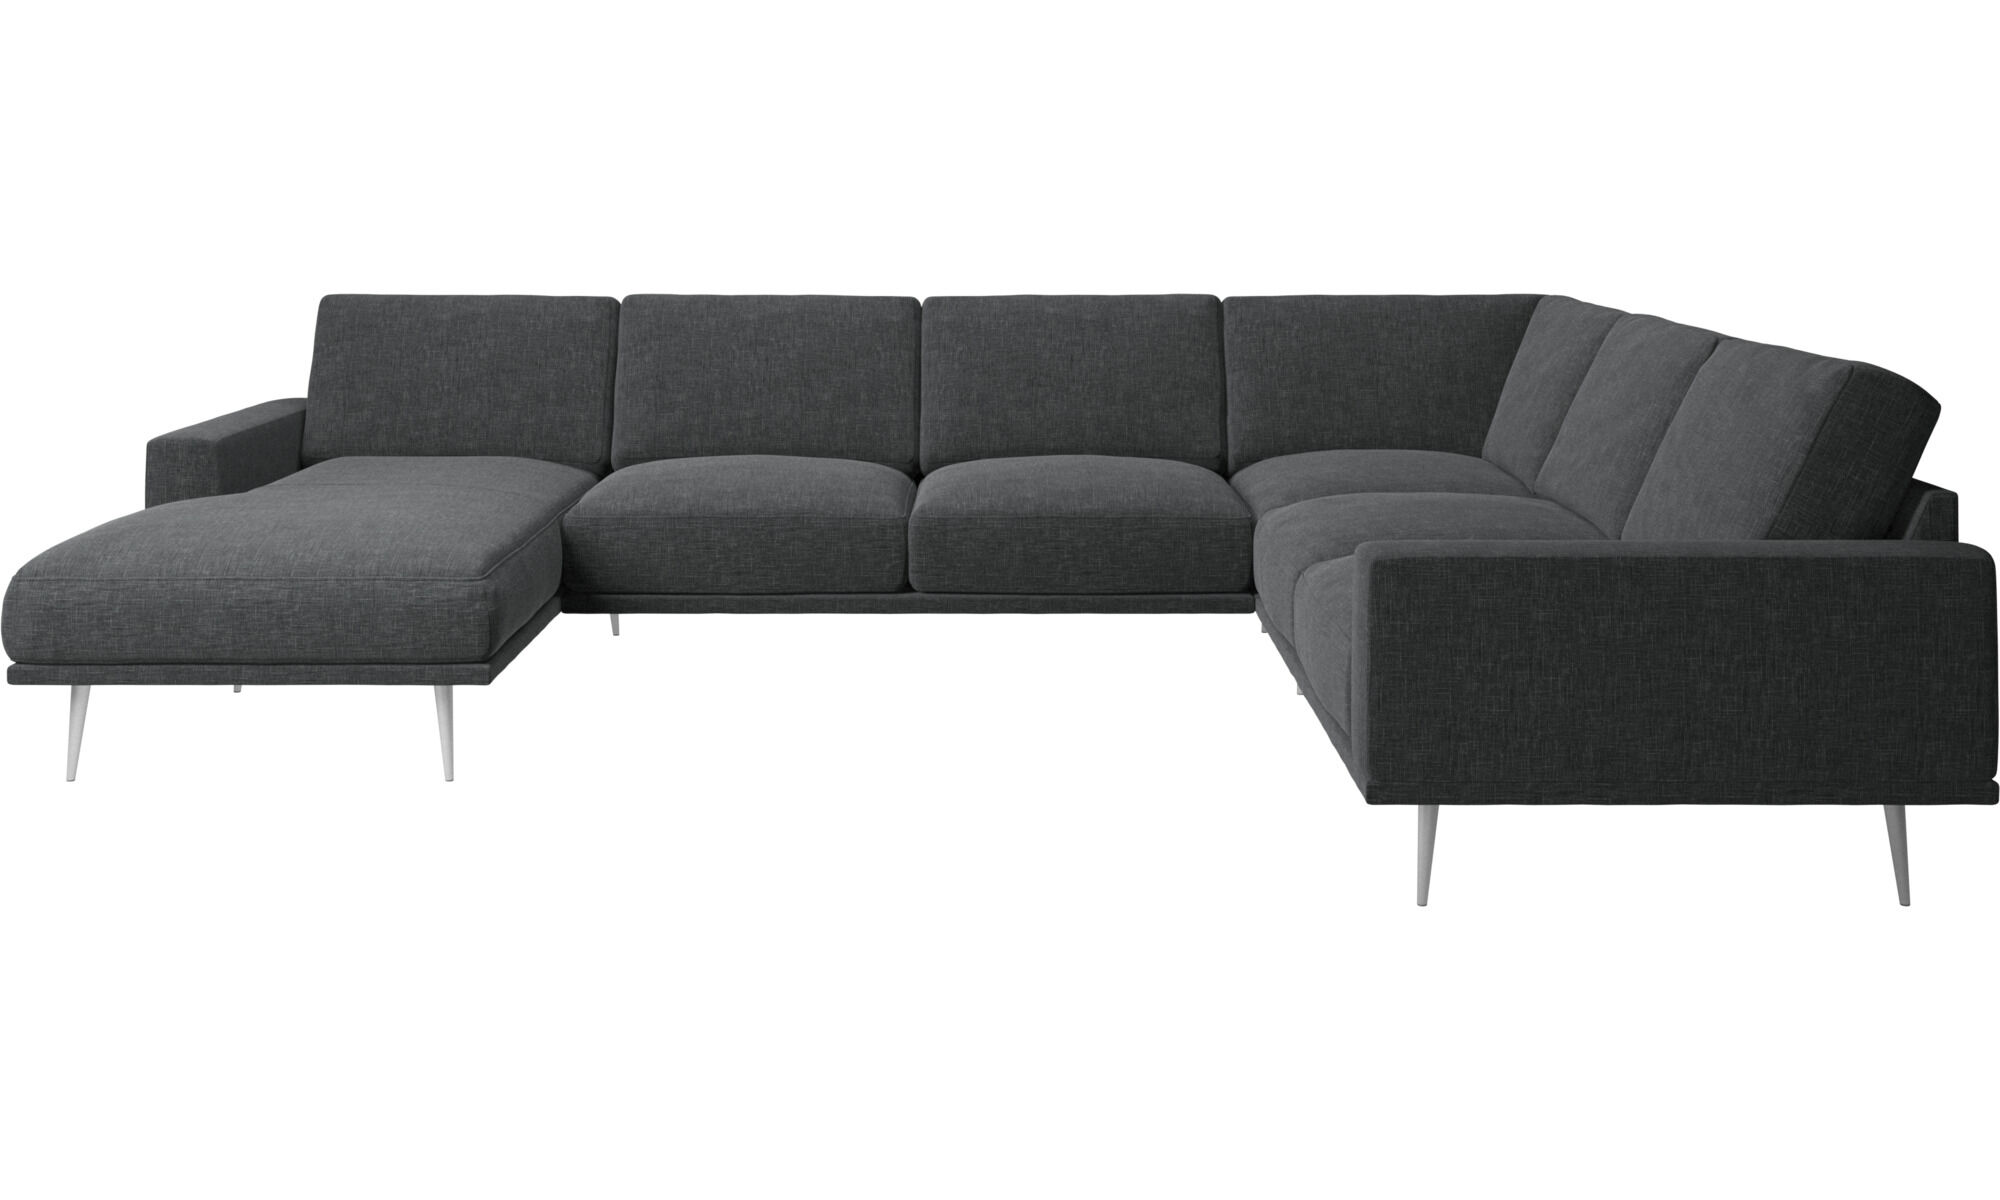 sofa bed with chaise longue uk claudia long lounge chairs you ll love wayfair ...